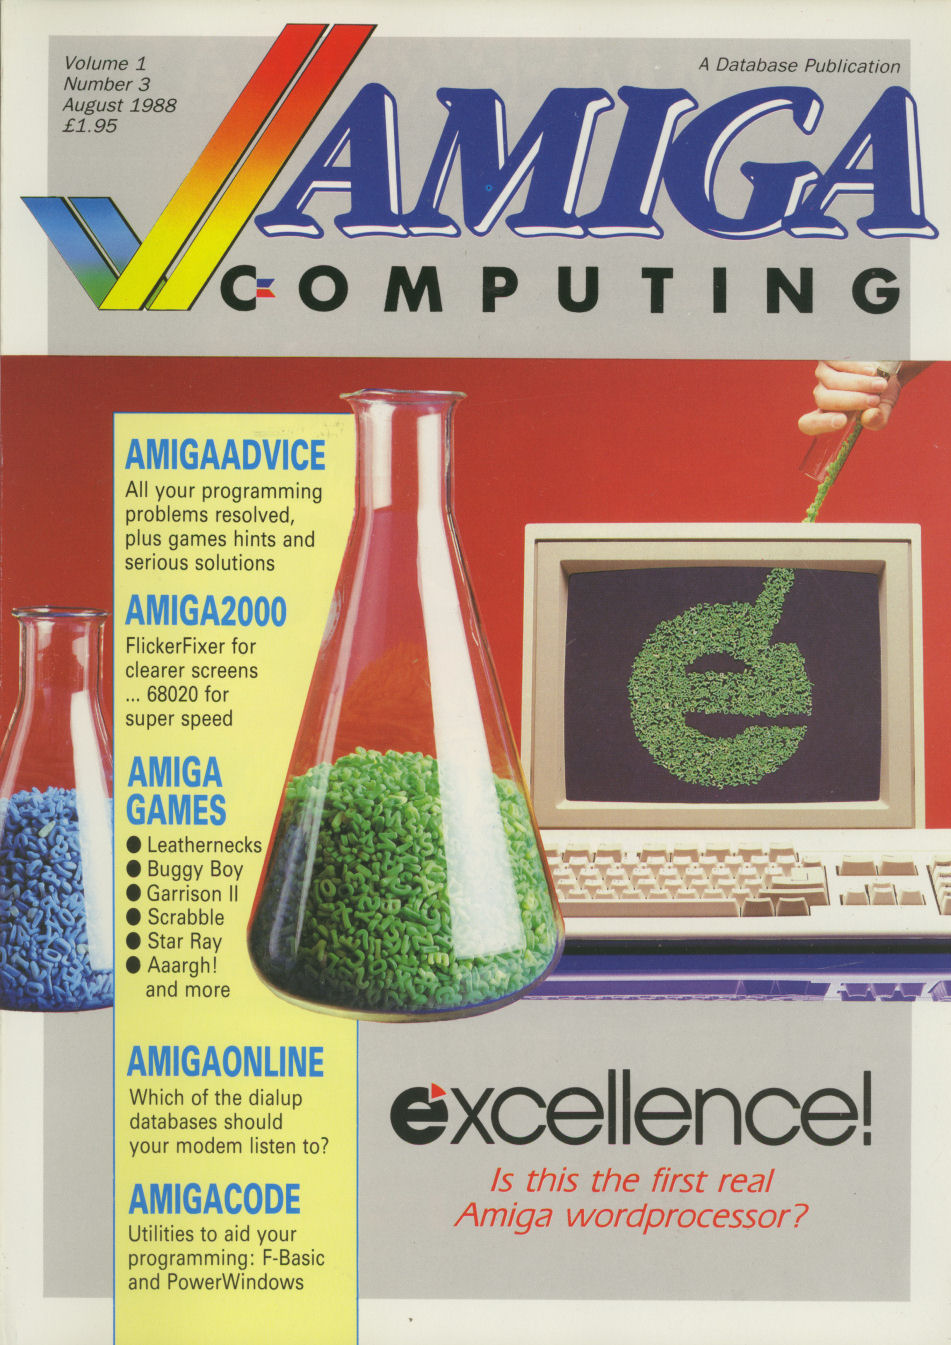 Amiga Computing Issue 3 | Magazines from the Past Wiki | FANDOM